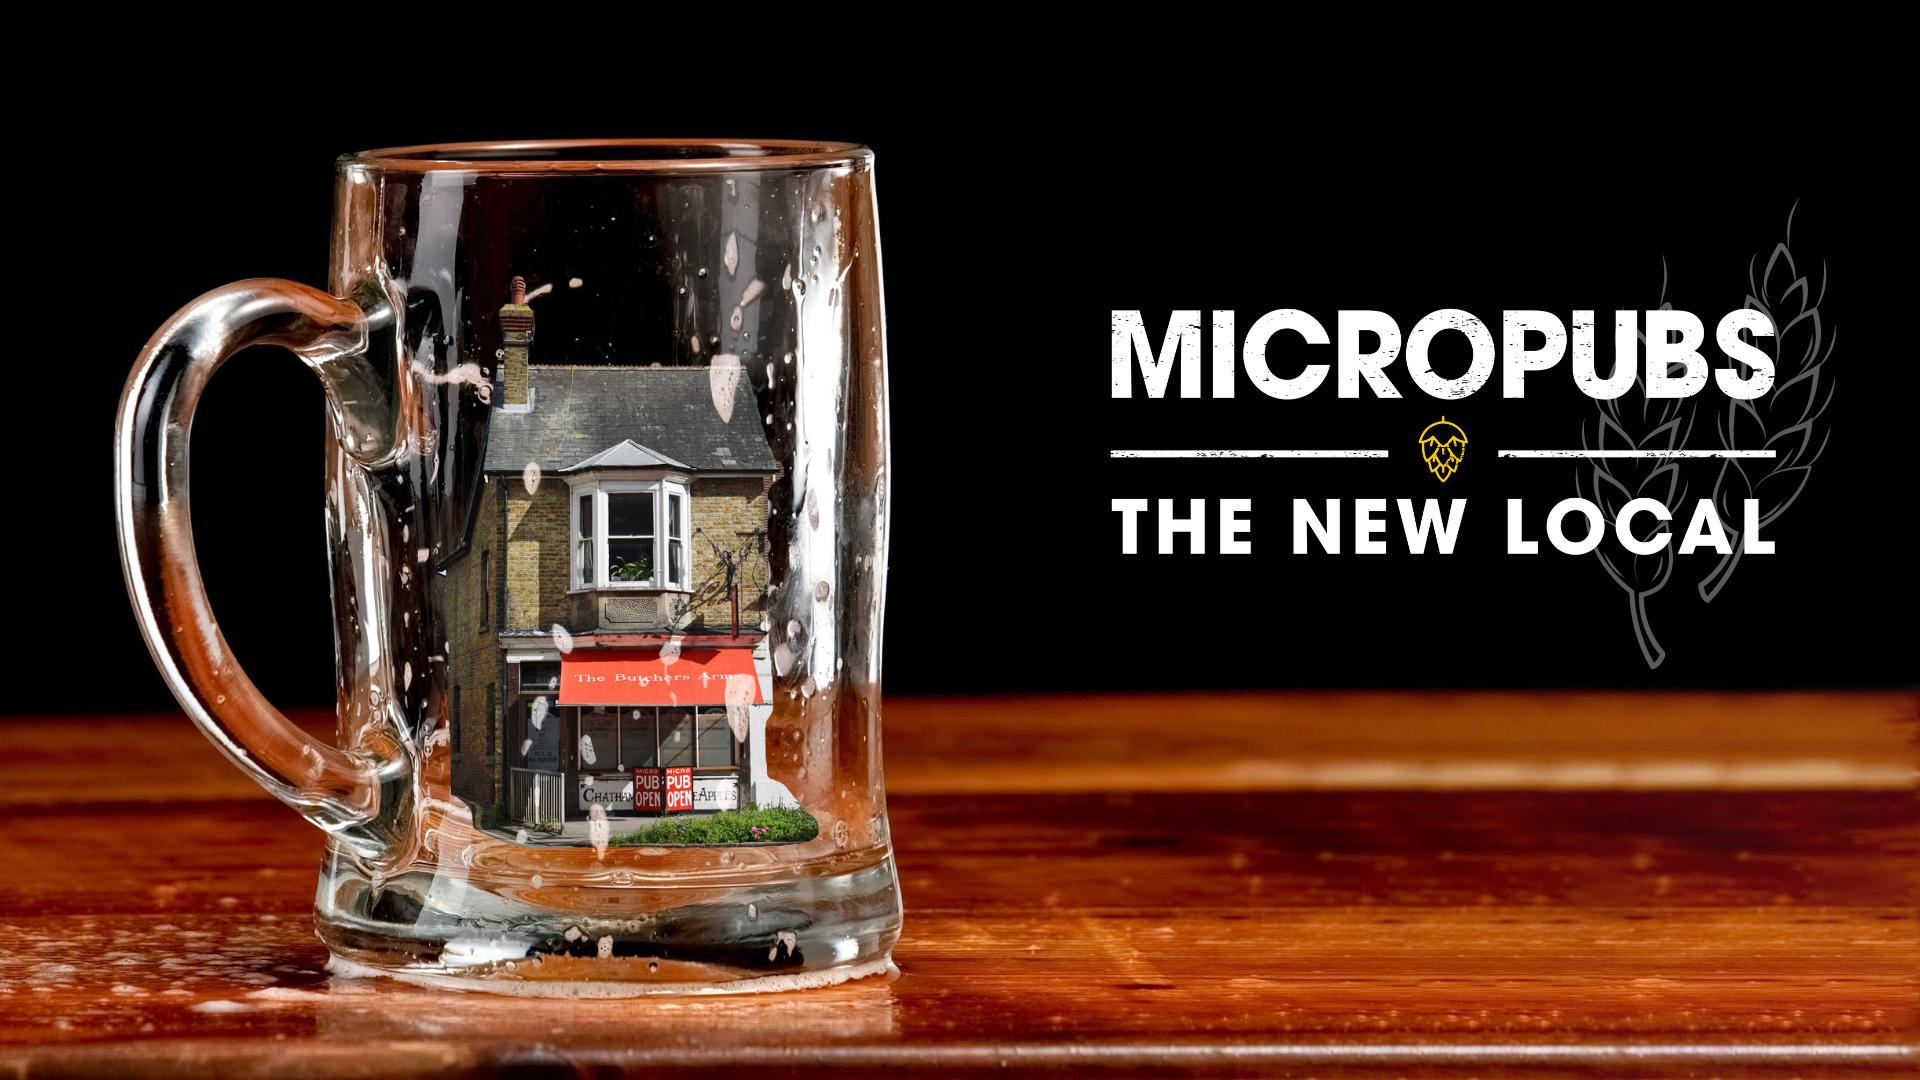 Micropubs - The New Local